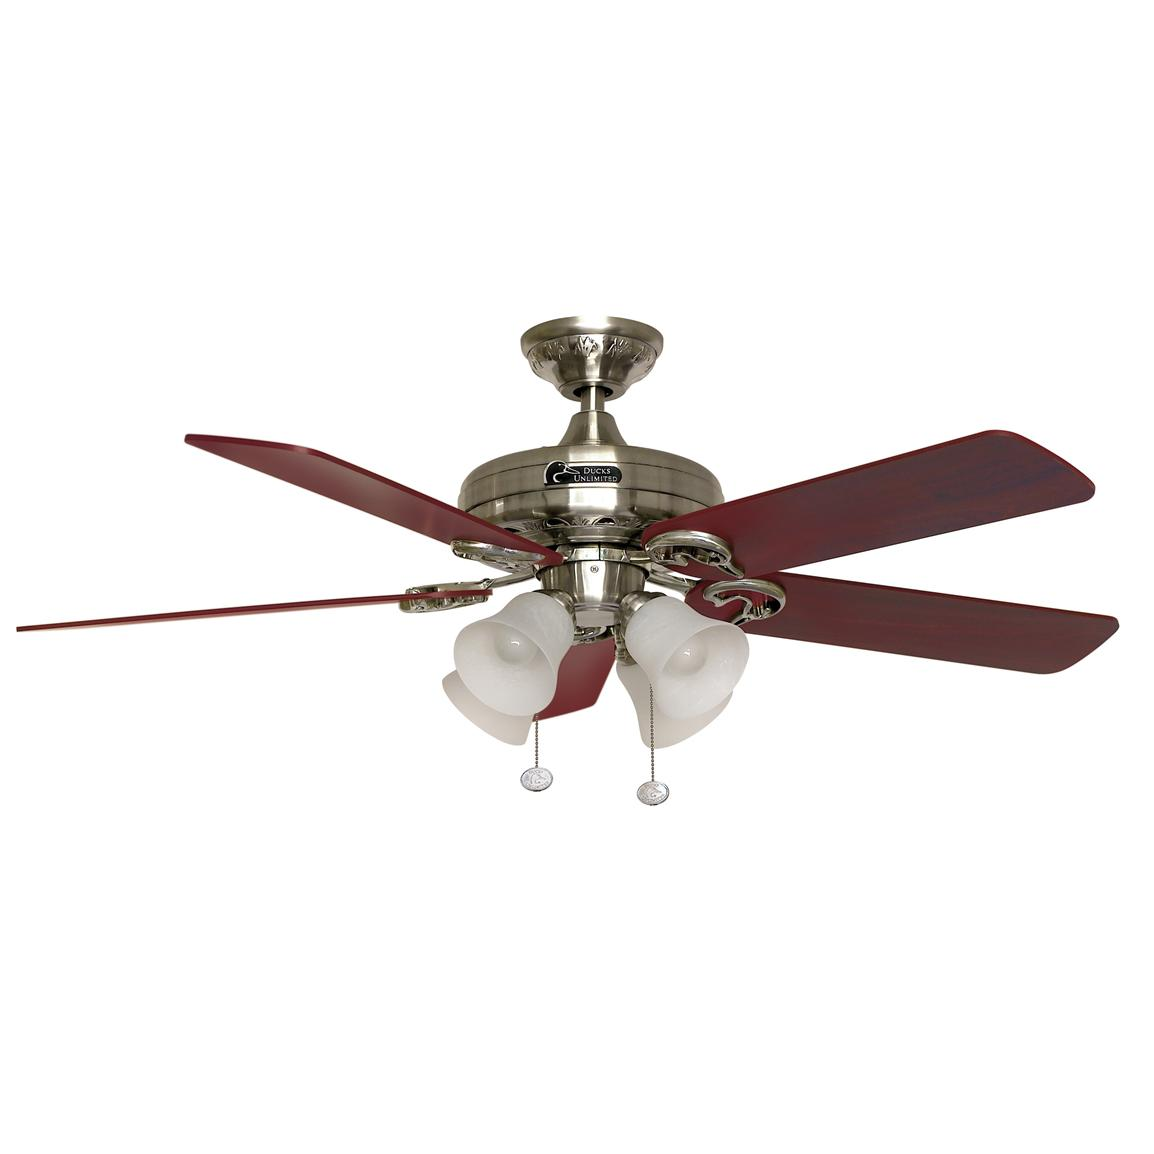 ducks unlimited ceiling fan photo - 2